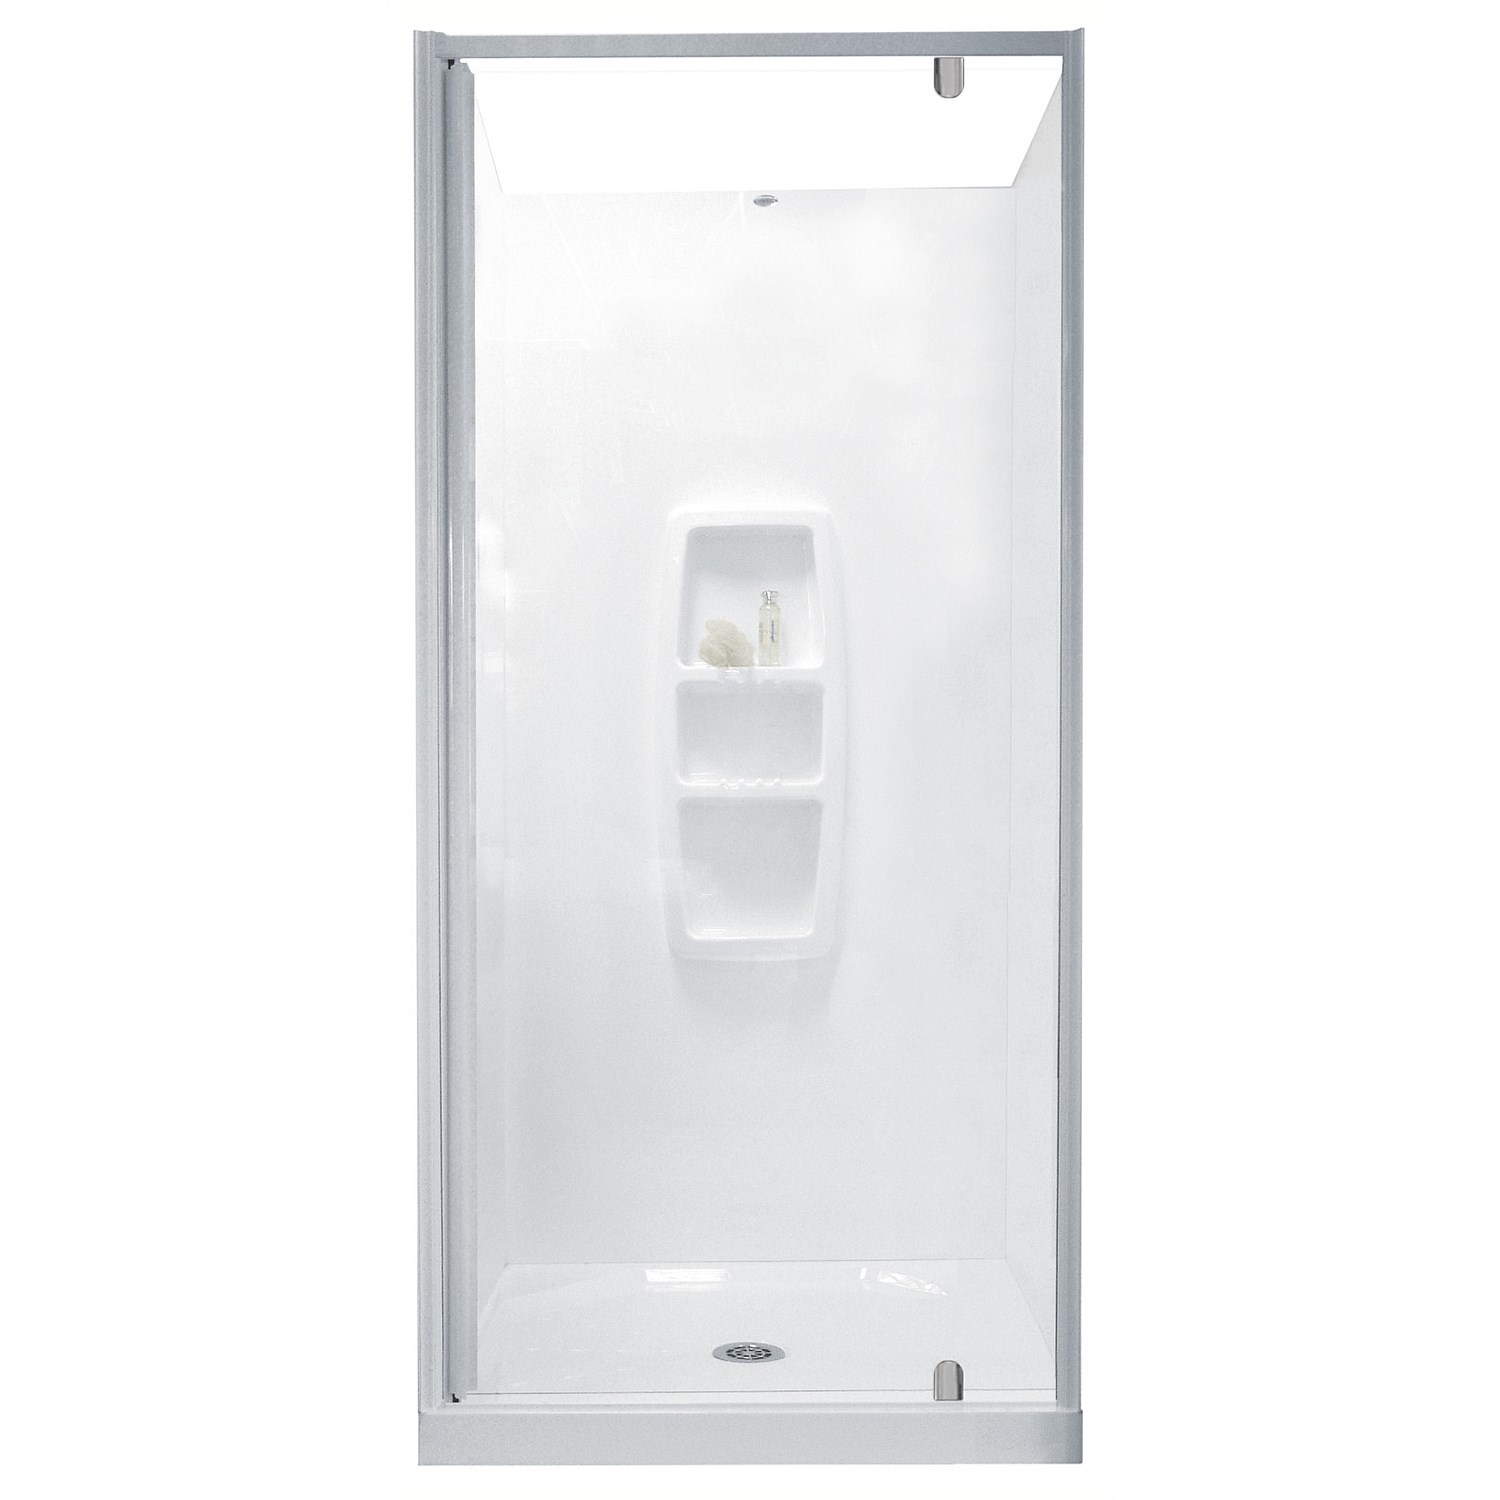 Acrylic - Clearlite Sierra 1200mm 3 Sided Shower Enclosure